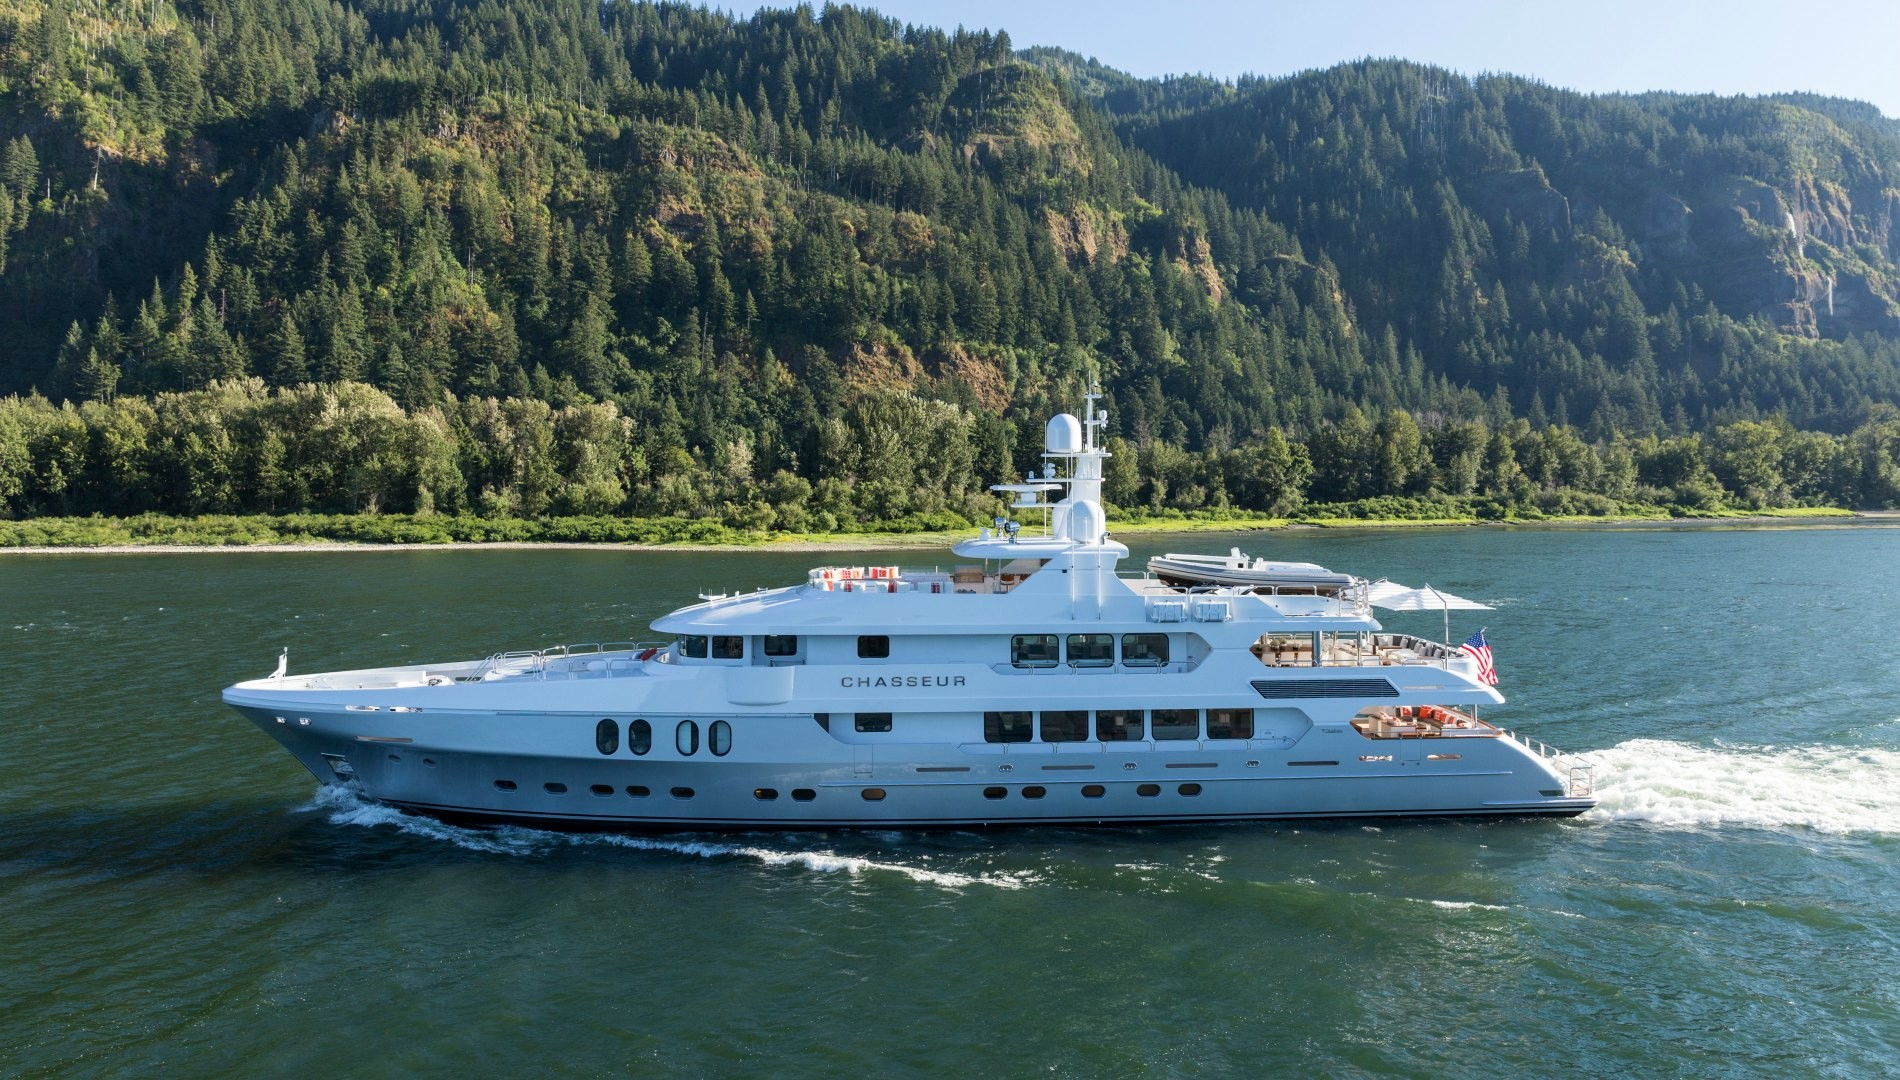 Chasseur Superyacht